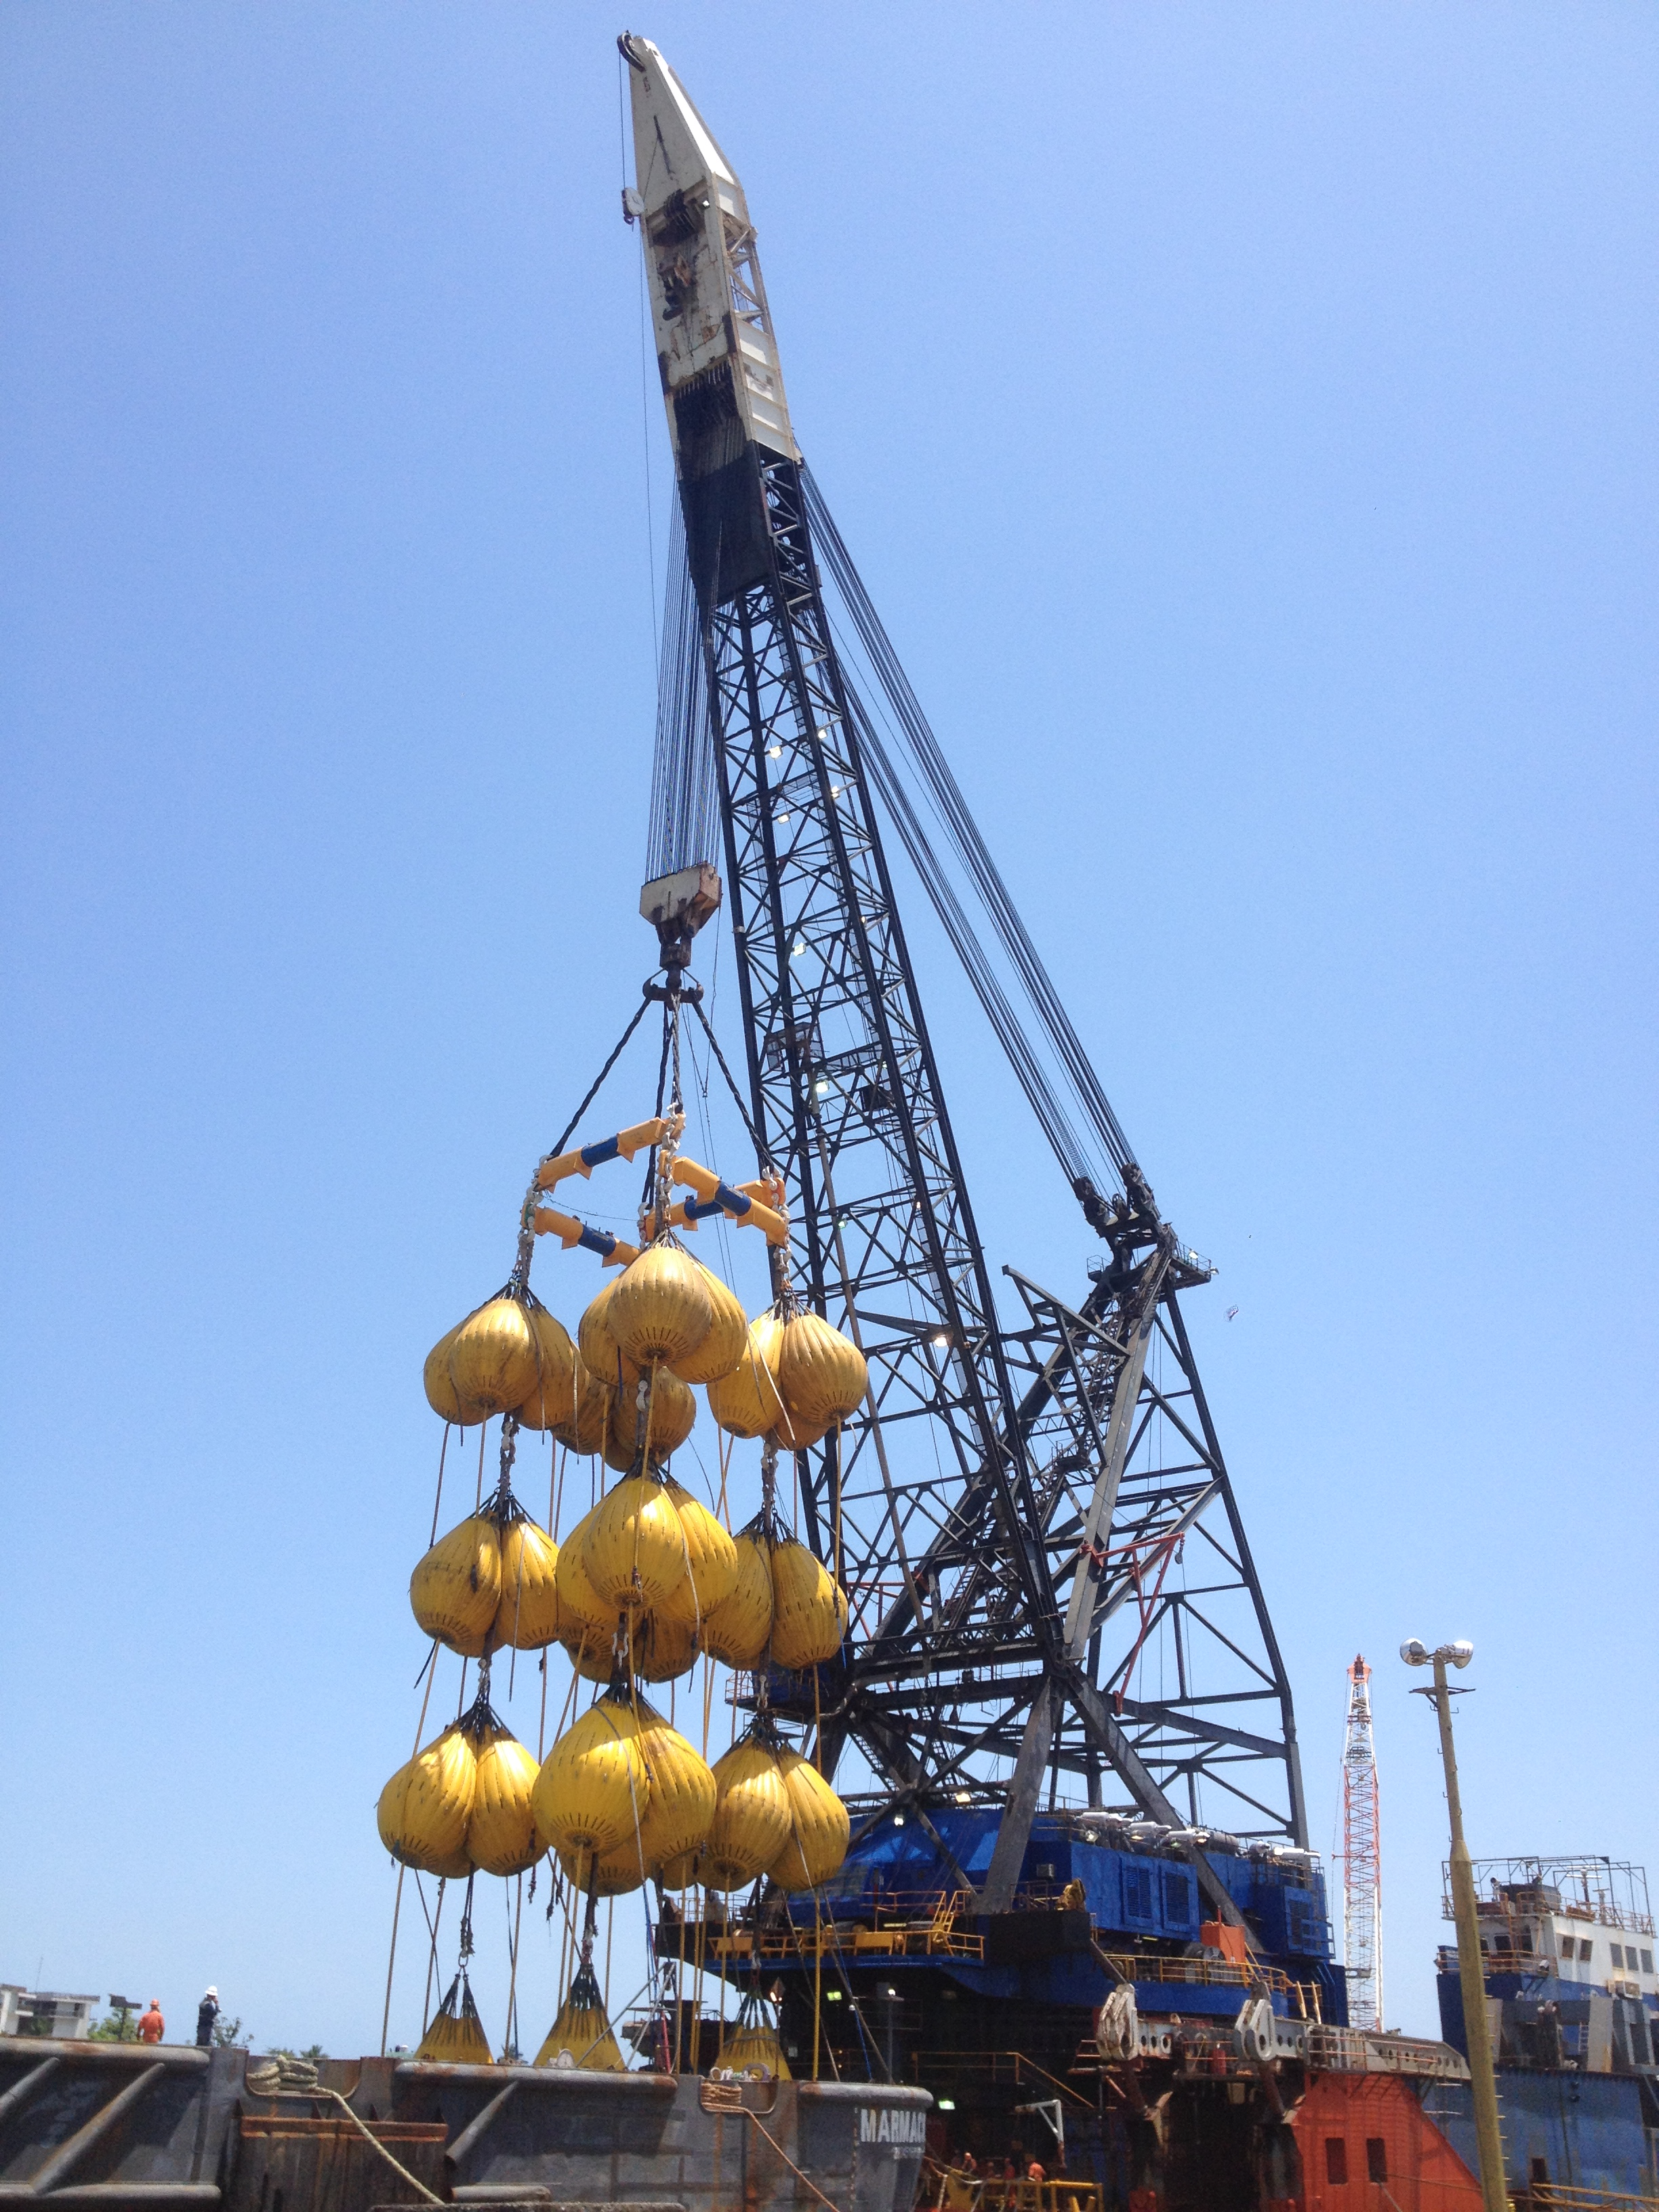 Proof load test underway on the crane